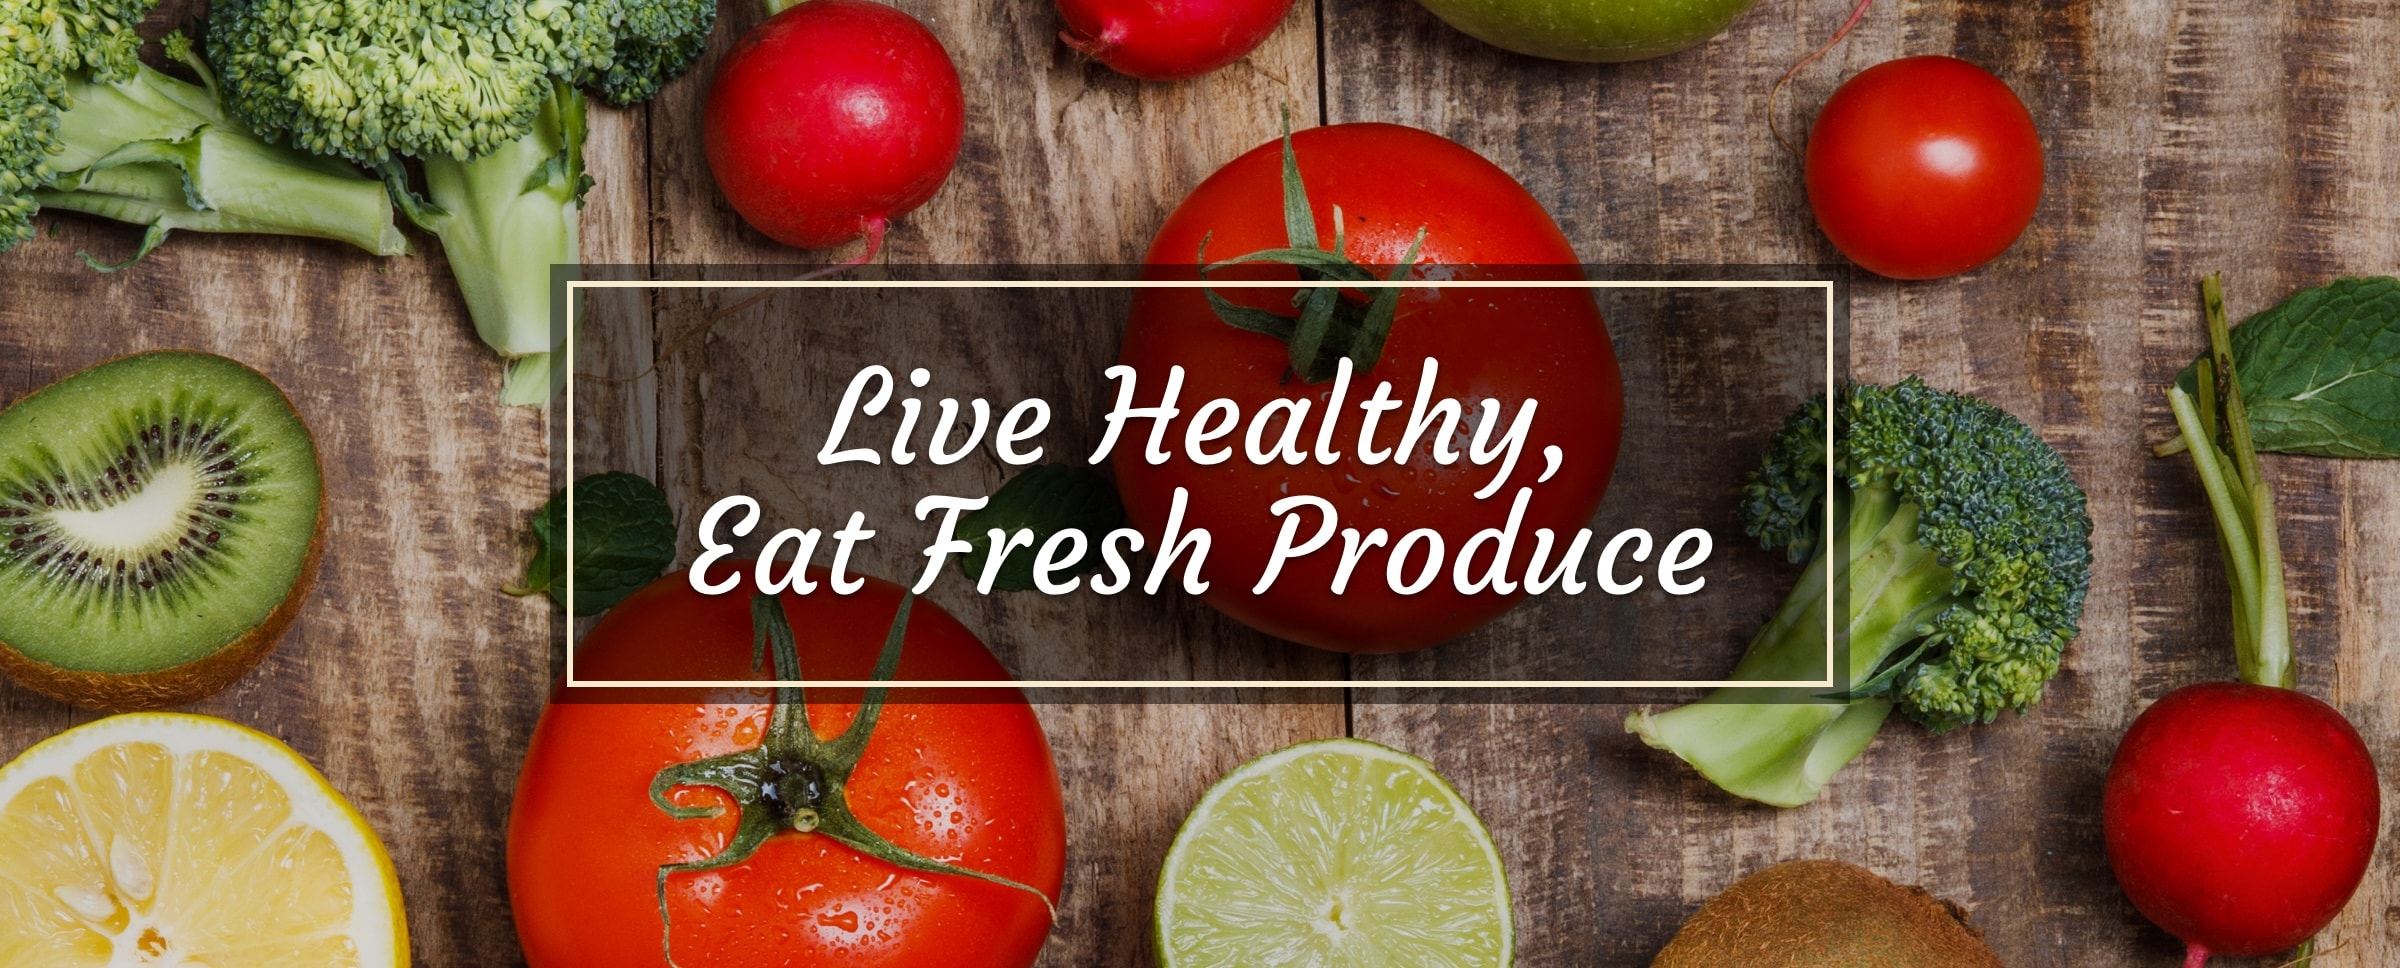 Live healthy, Eat Fresh Produce